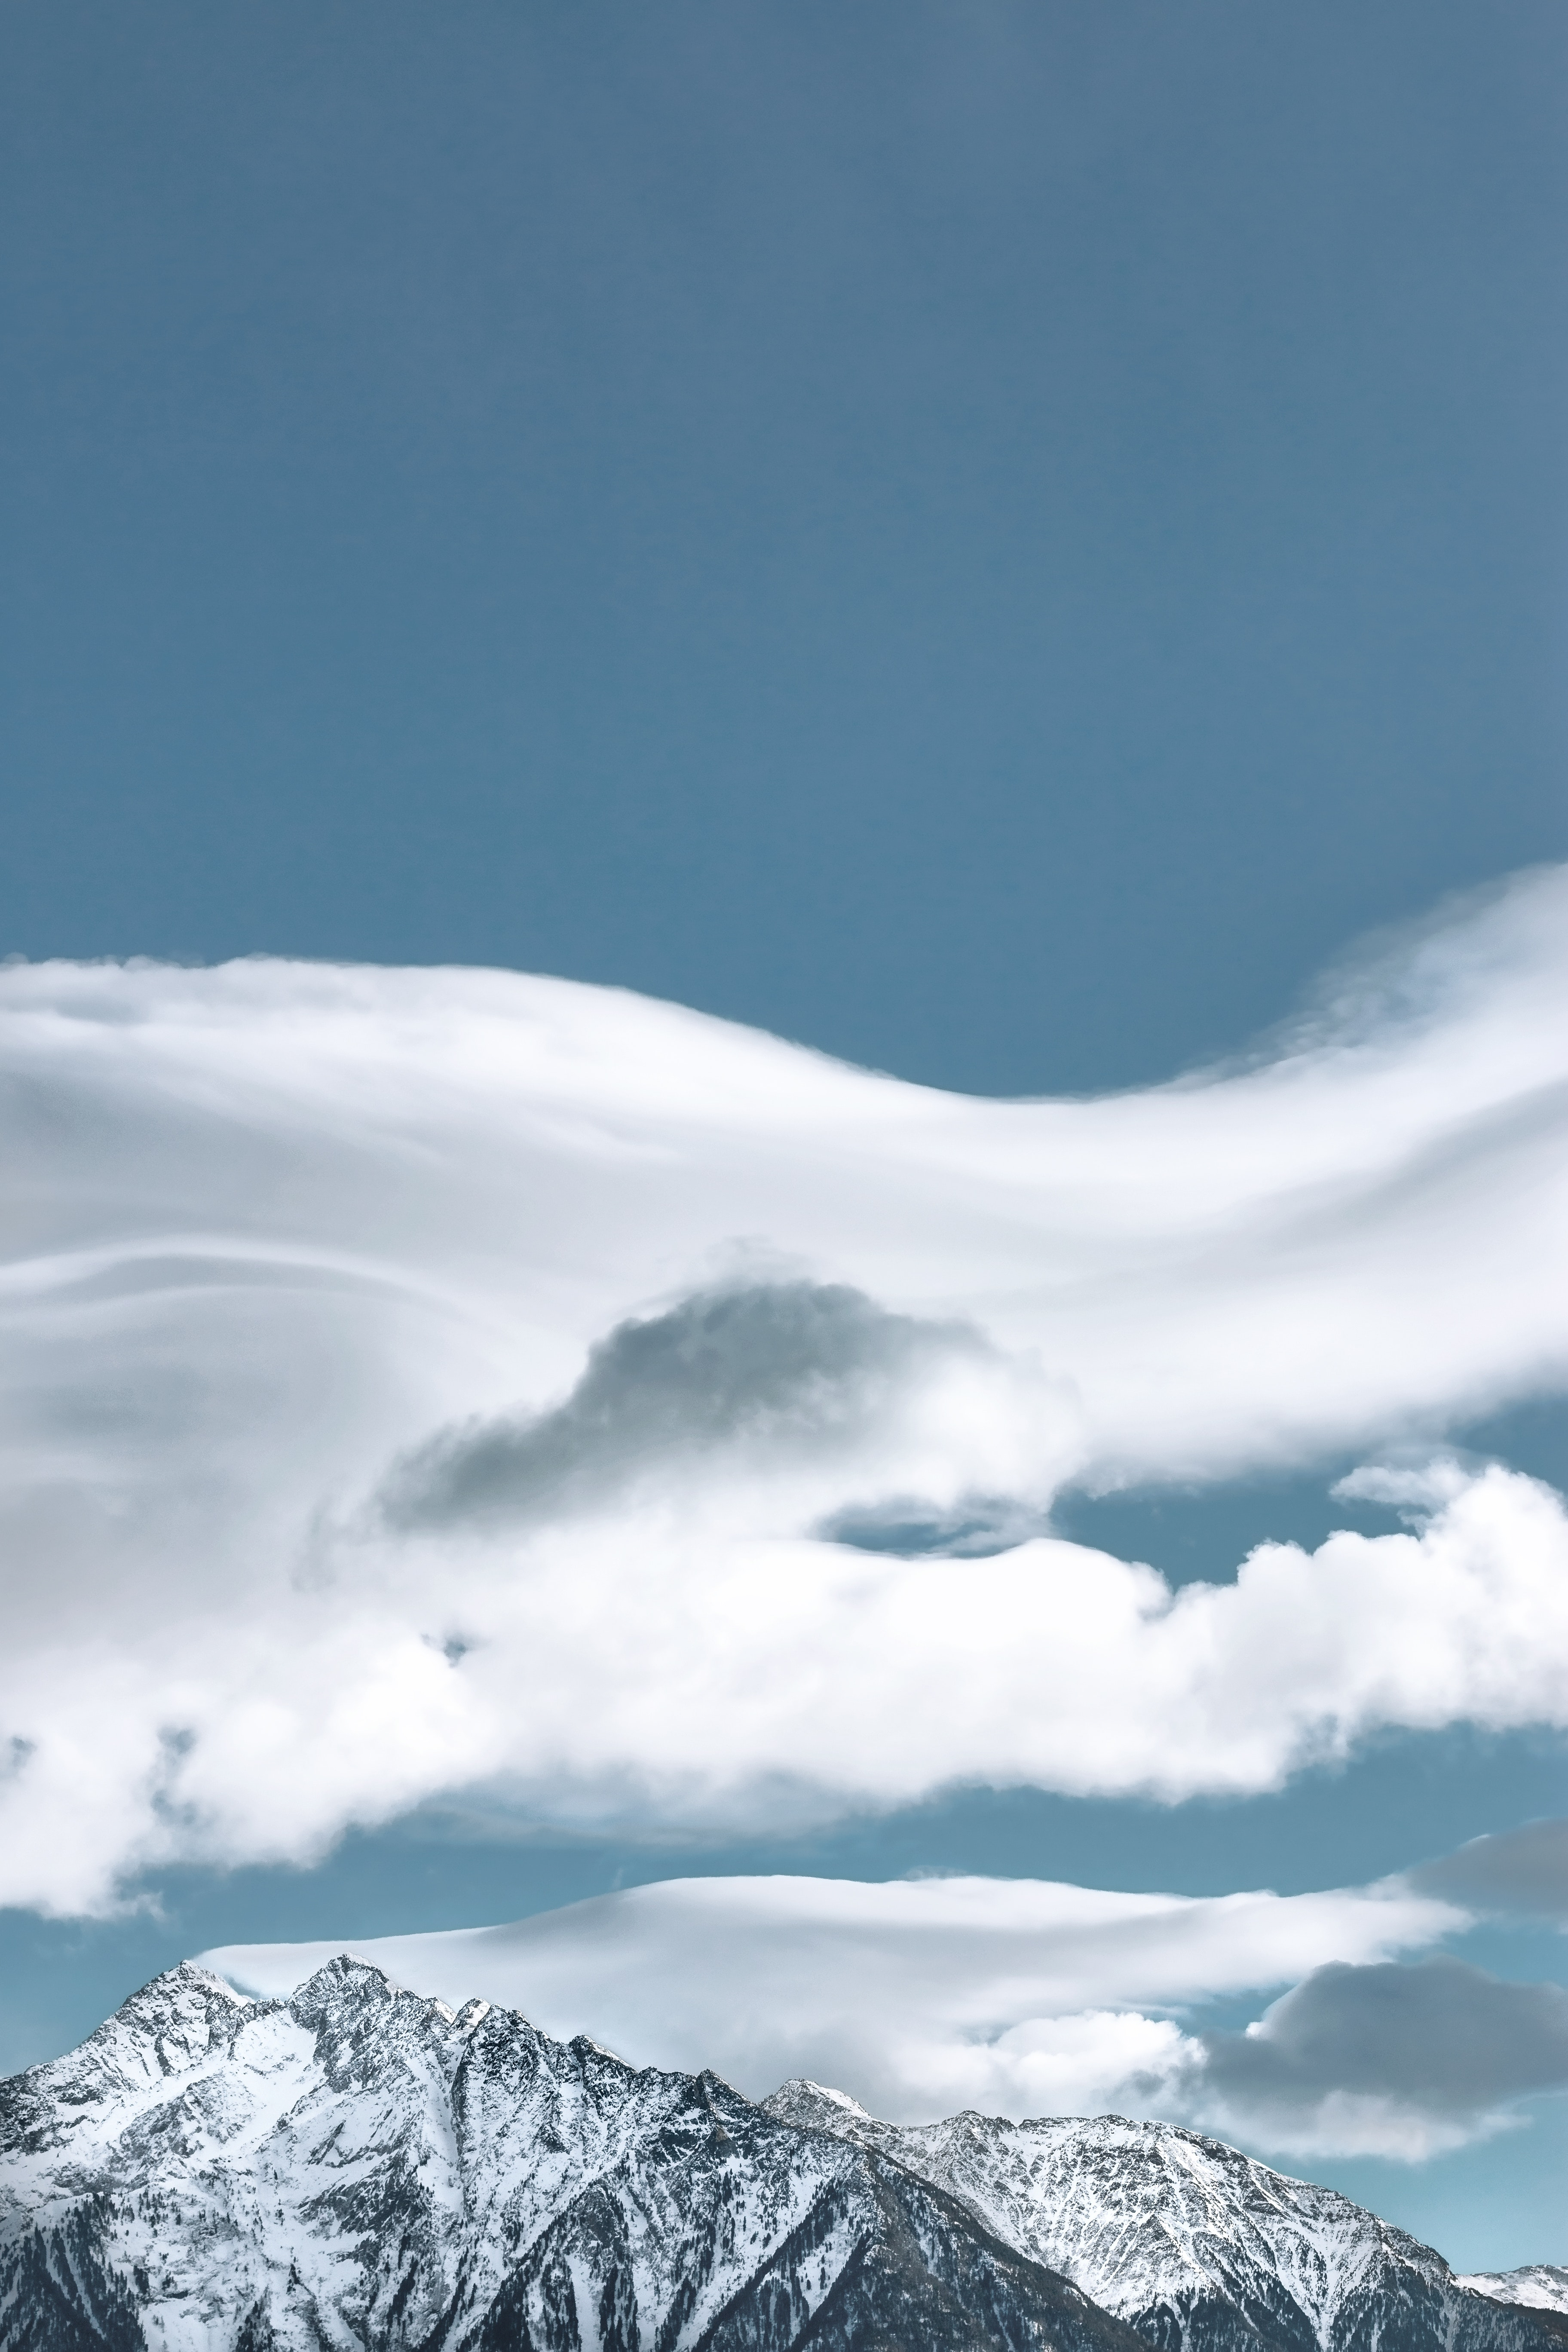 Cloud Formation Above Snow-capped Mountain, Clouds, Cold, Daytime, High, HQ Photo